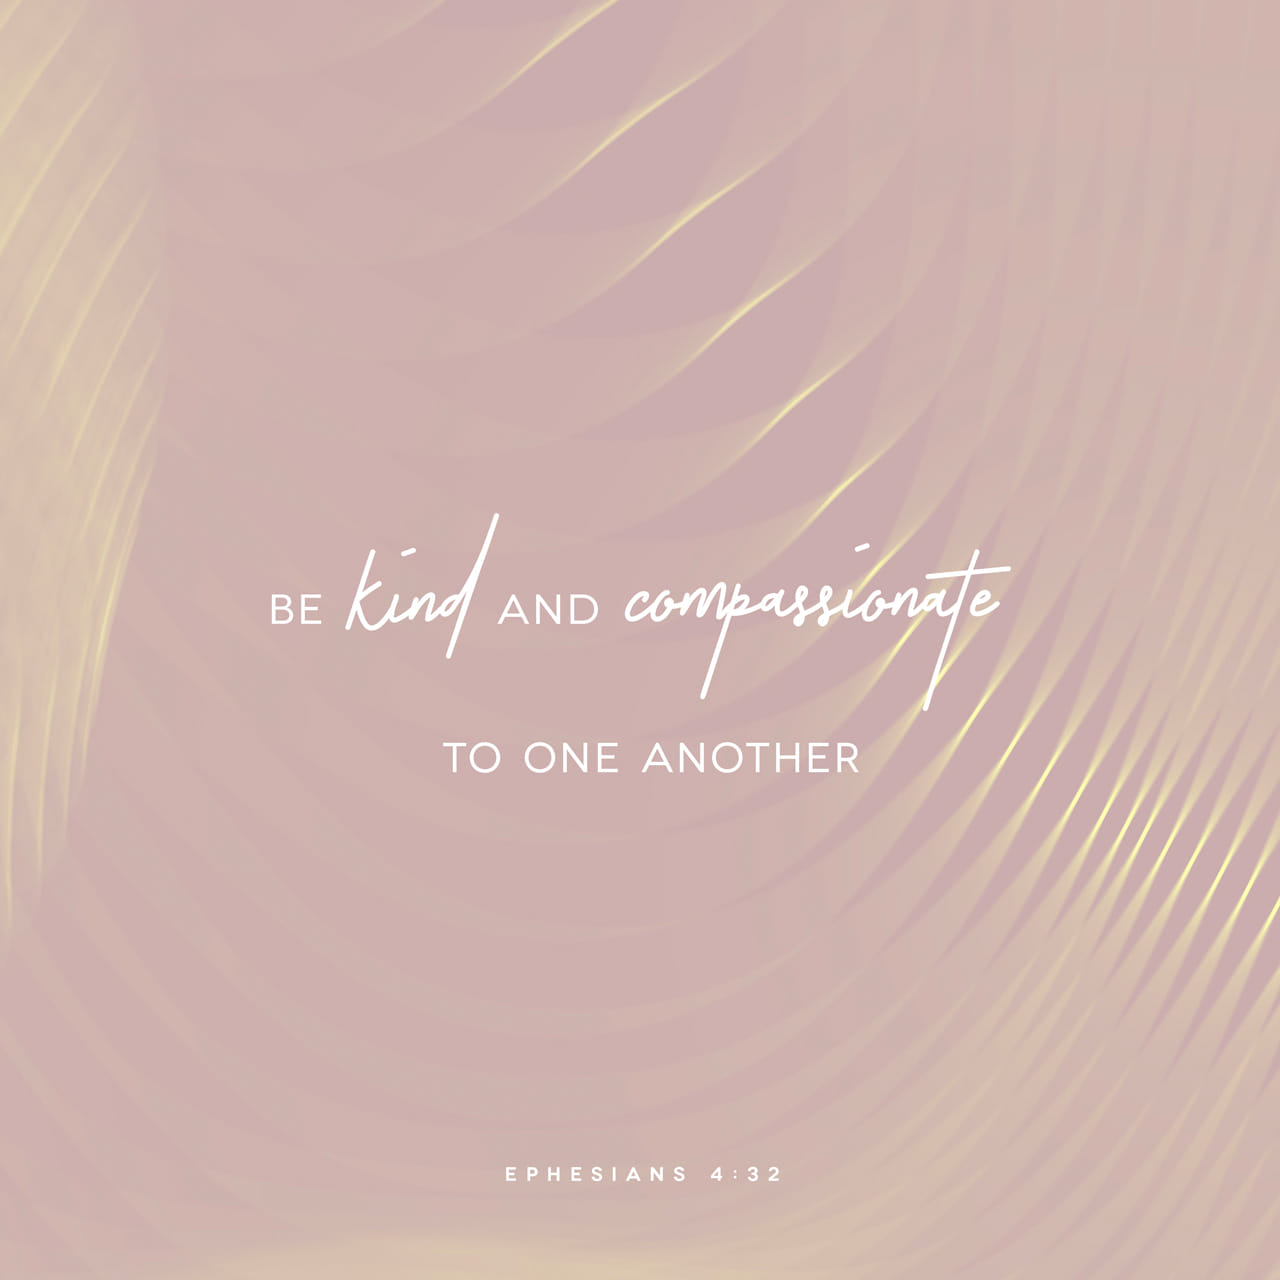 Ephesians 4:31-32 Let all bitterness, and wrath, and anger, and clamour, and evil speaking, be put away from you, with all malice: And be ye kind one to another, tenderhearted, forgiving one another, even as God for Ch | King James Version (KJV)